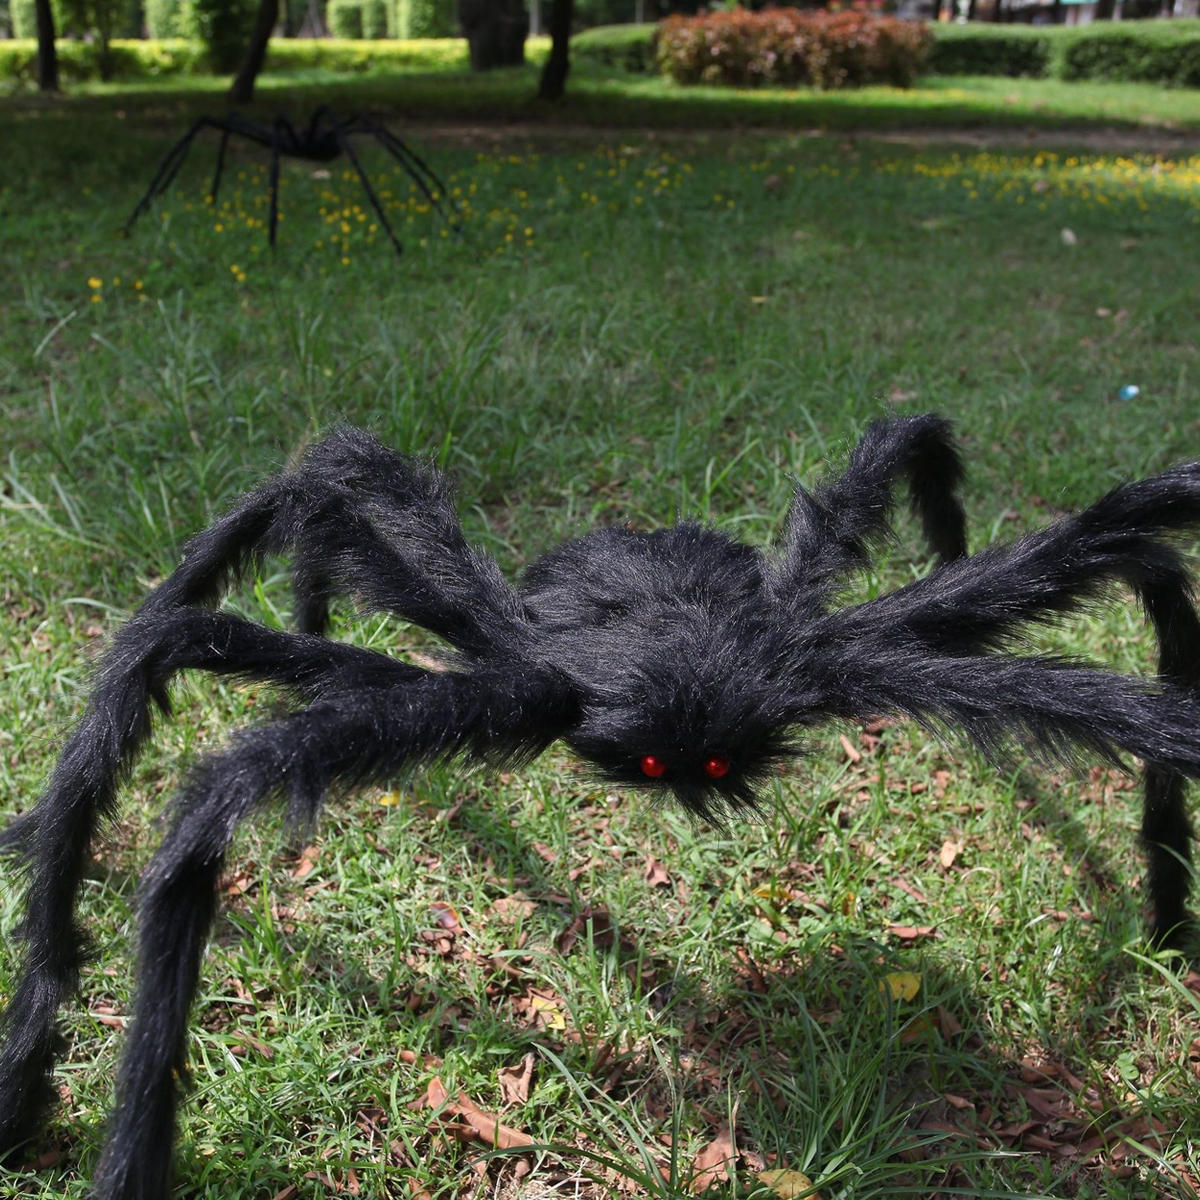 5FT/150cm Hairy Giant Spider Decorations Huge Halloween Outdoor Decor Toys for Party - 7